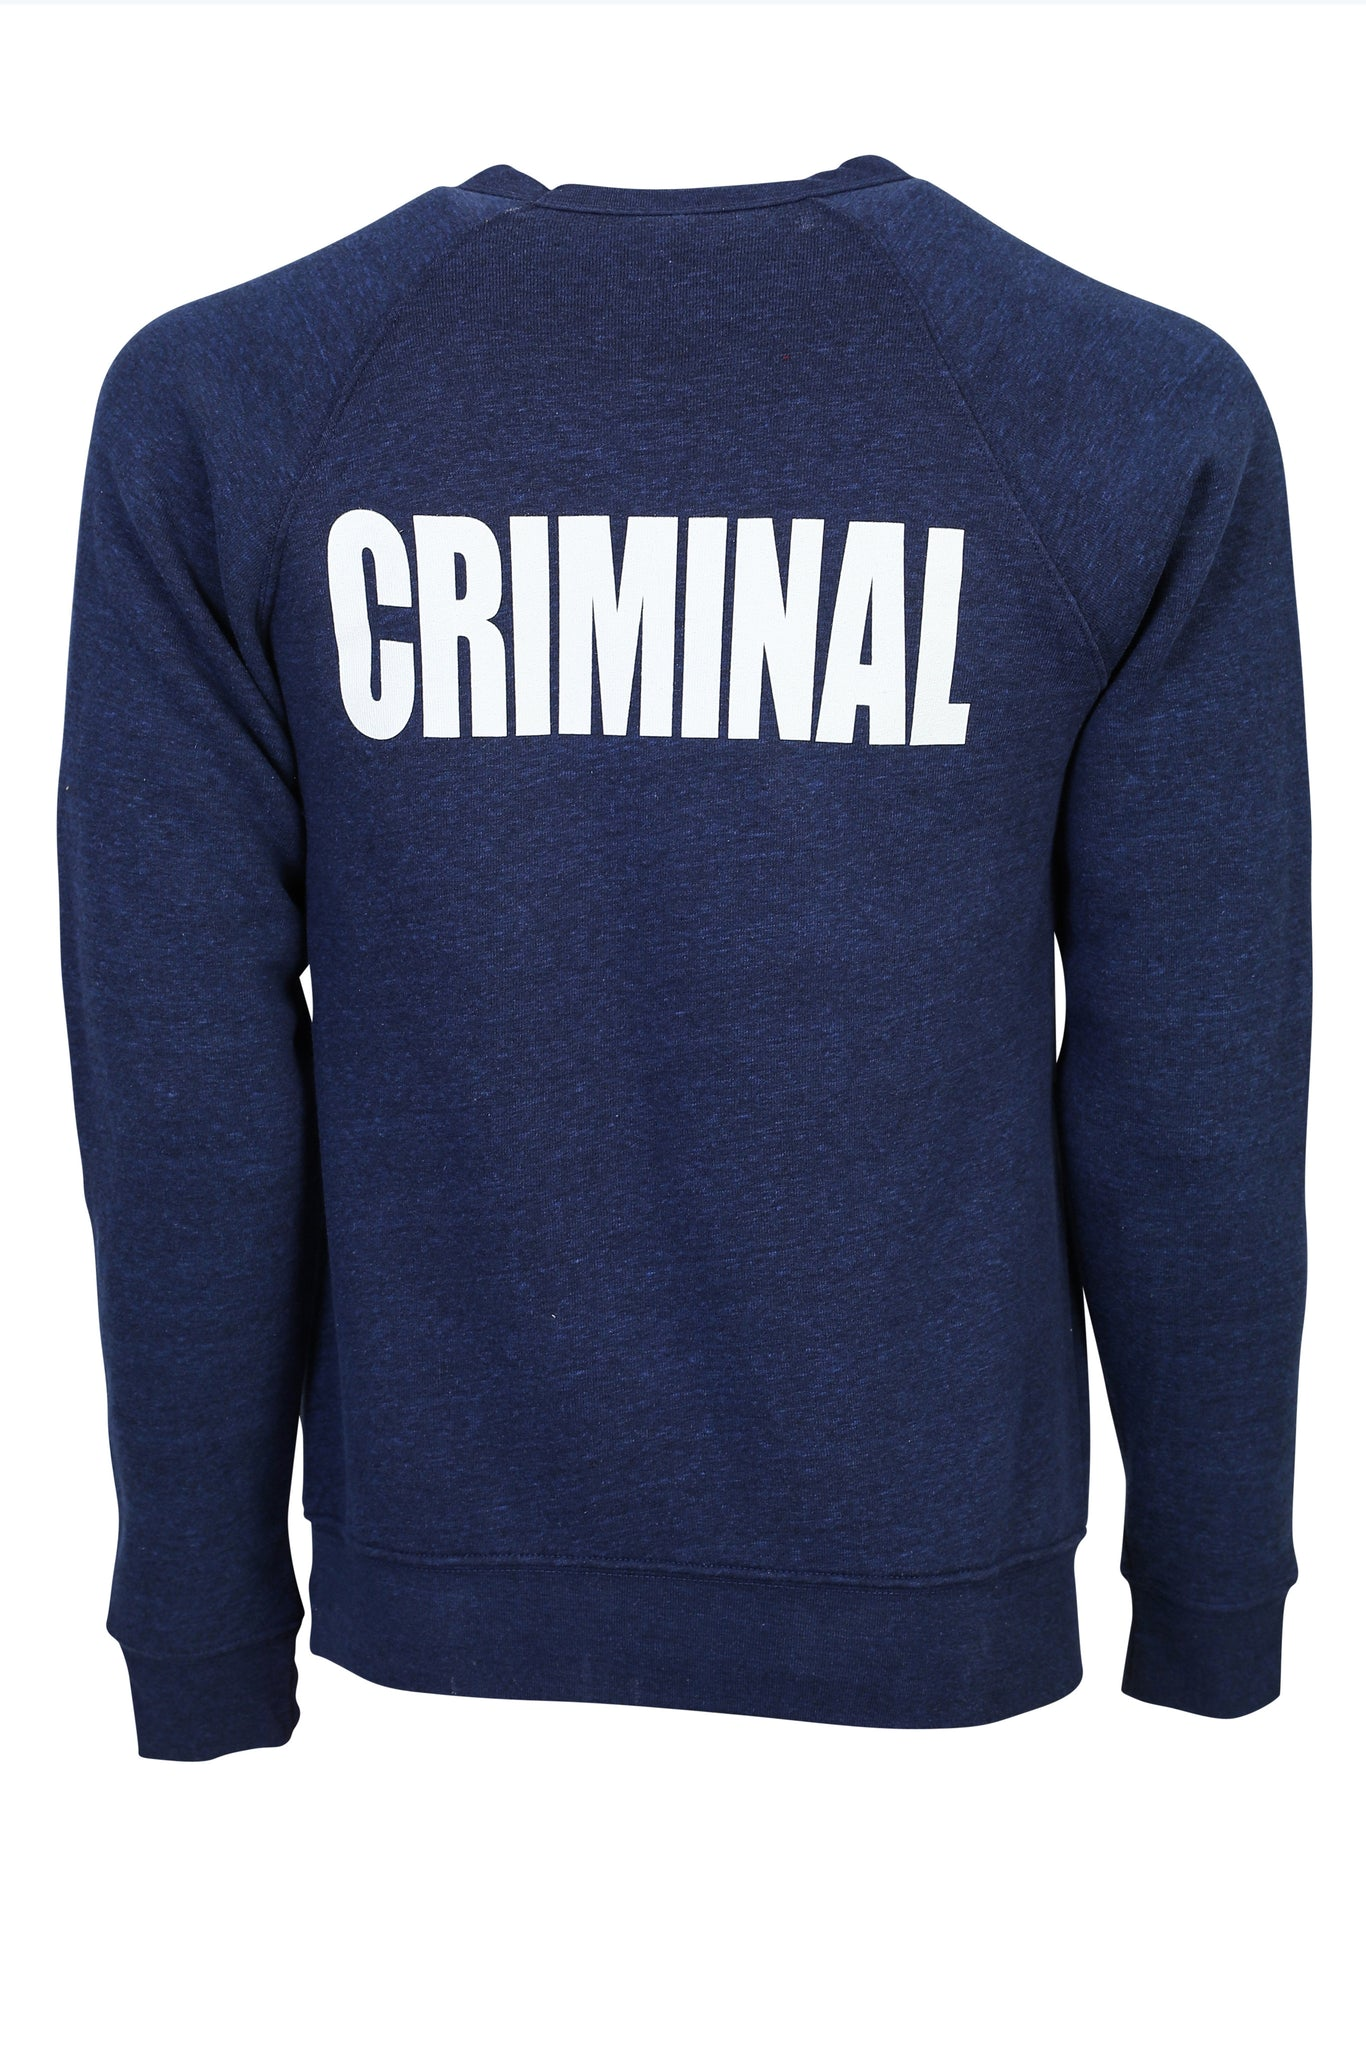 Smooth Criminal - Unisex Sweater